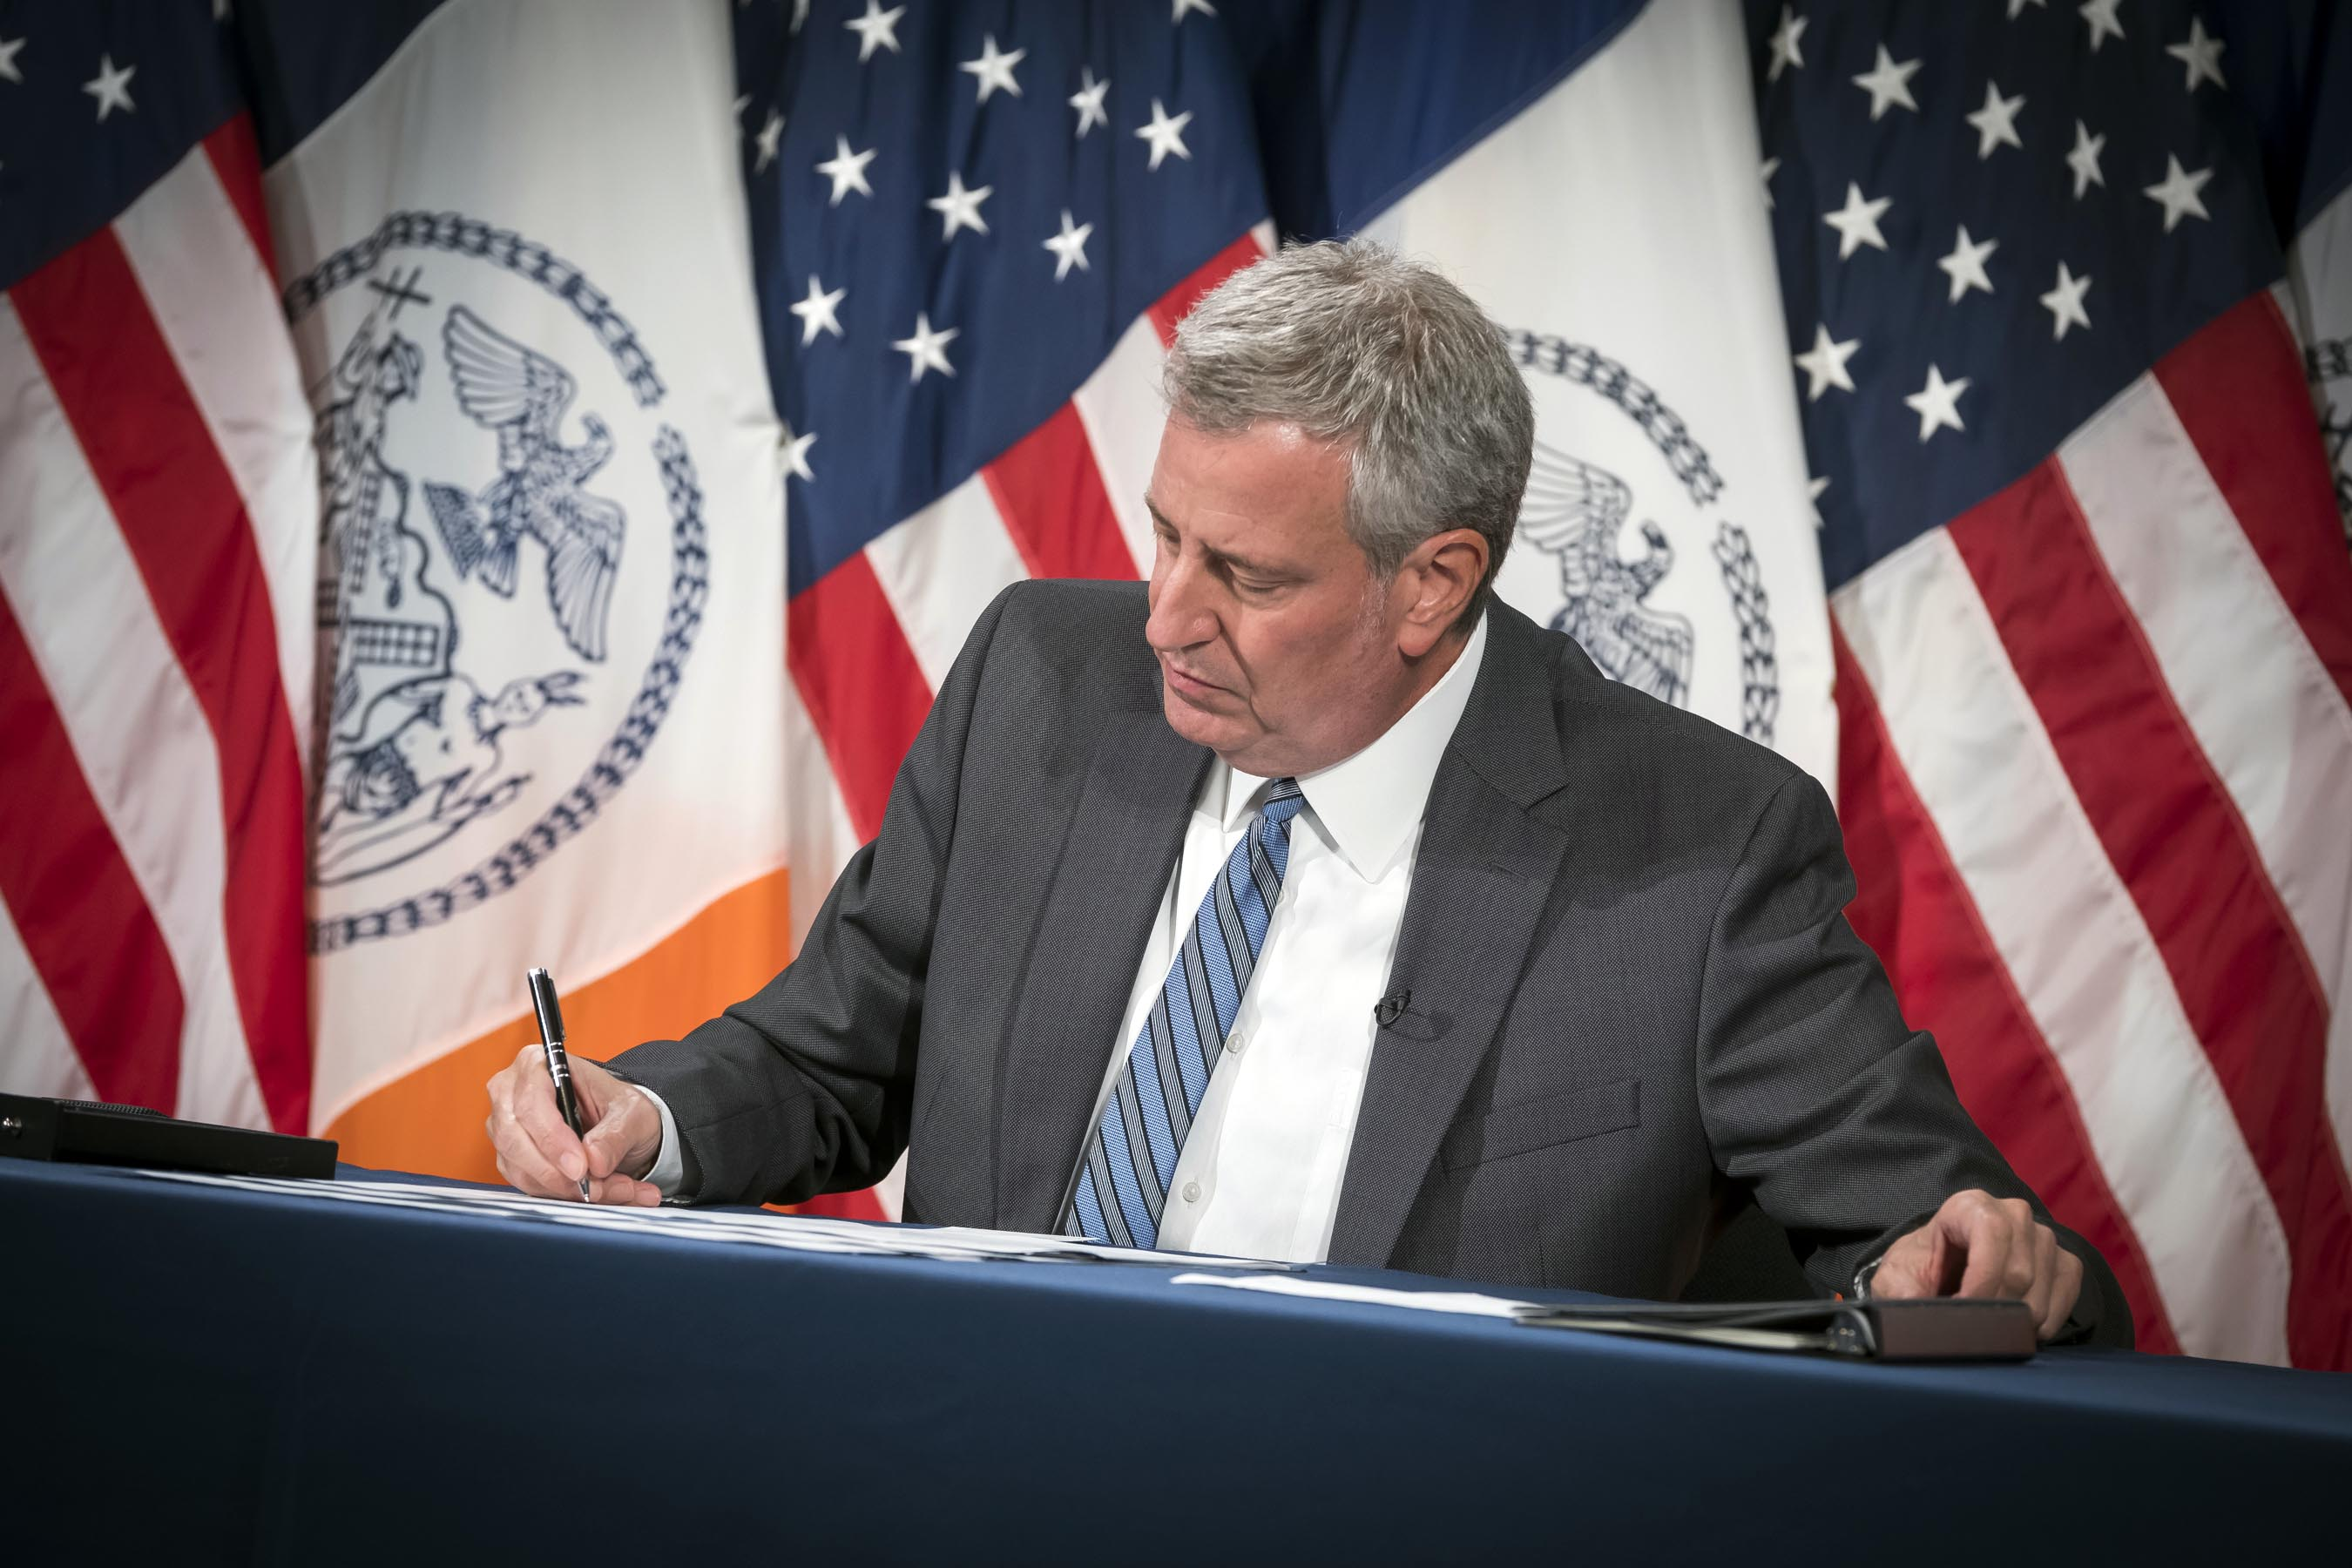 Mayor De Blasio Sounds Optimistic about Brooklyn Exiting the Red Zones Very Soon